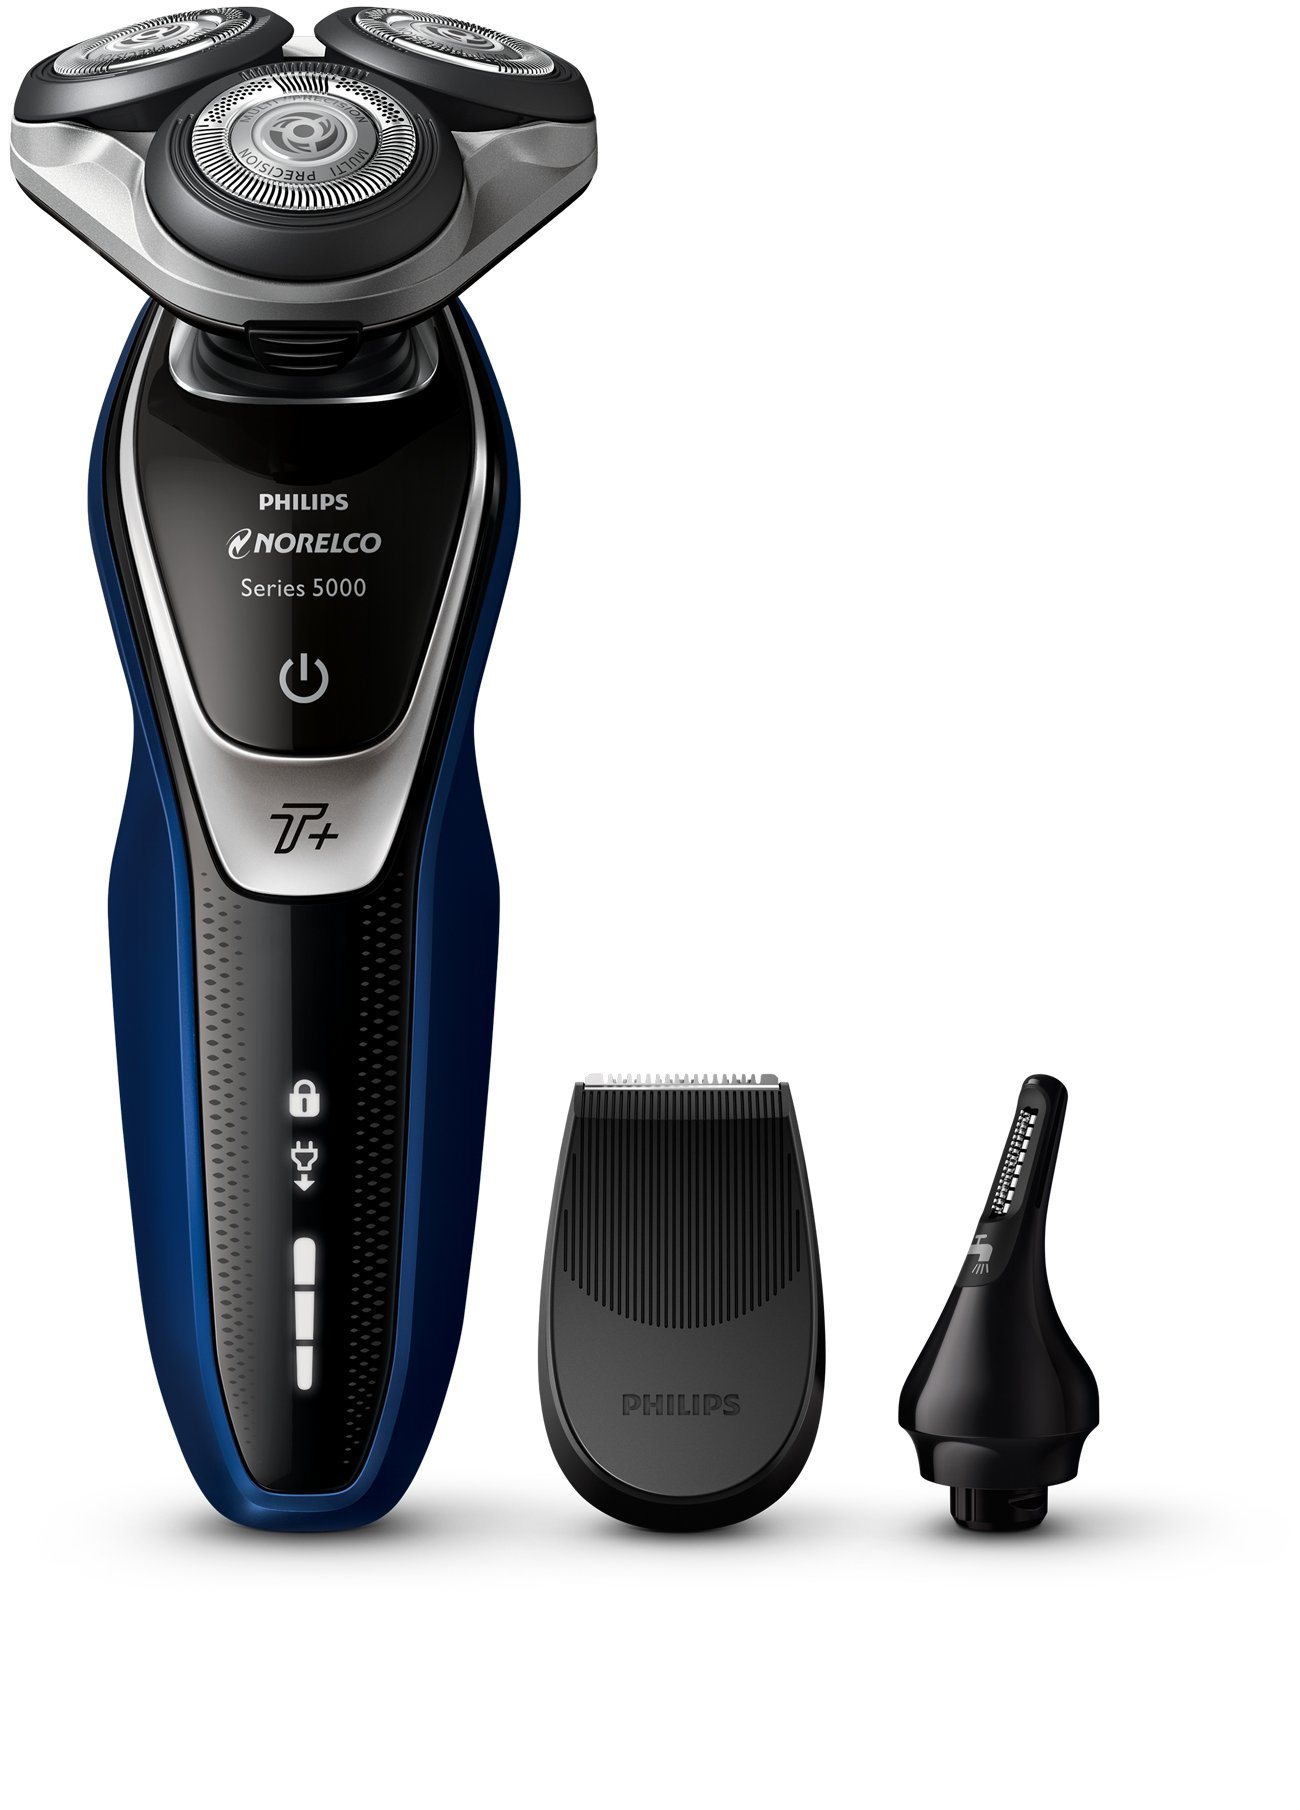 Philips Norelco Electric Shaver 5570 Wet & Dry, S5572/90, with Turbo+ mode and Nose + Ear Trimmer